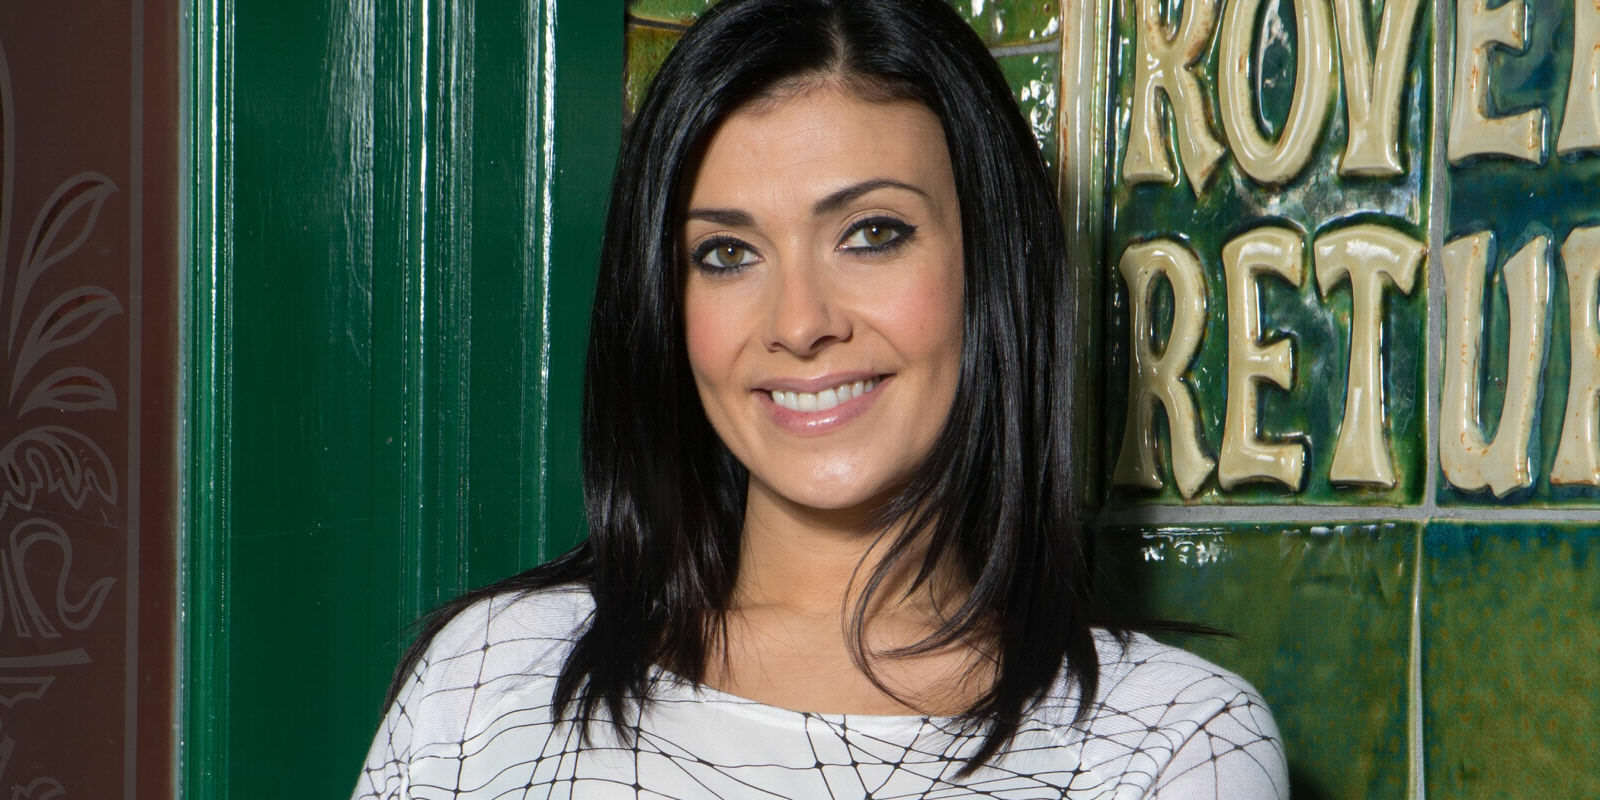 Coronation Street Actress Caught Up In Sex Tape Scandal landscape soaps coronation street kym marsh michelle connor